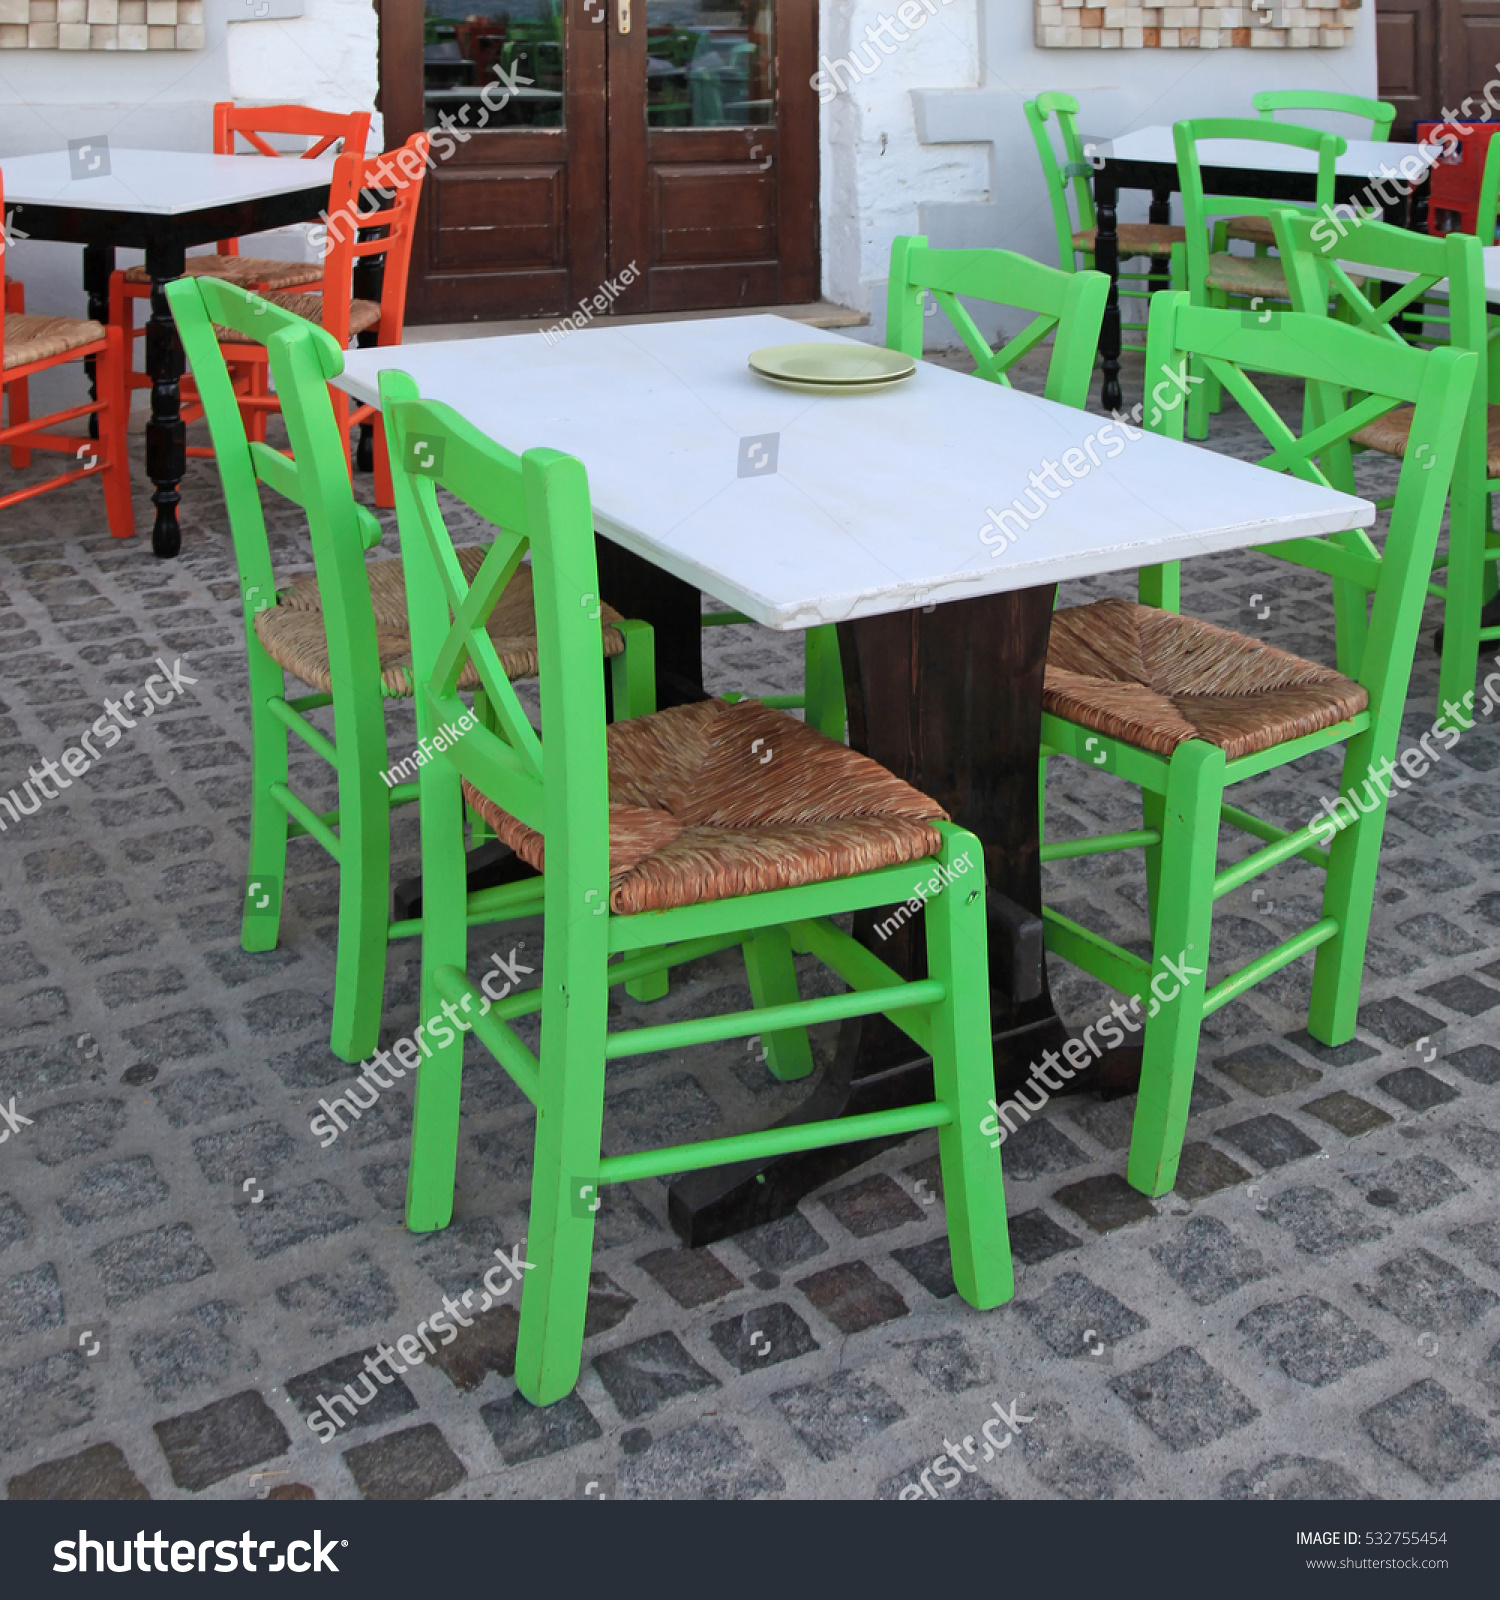 Greek outdoor cafe with green wooden chairs crete greece square image